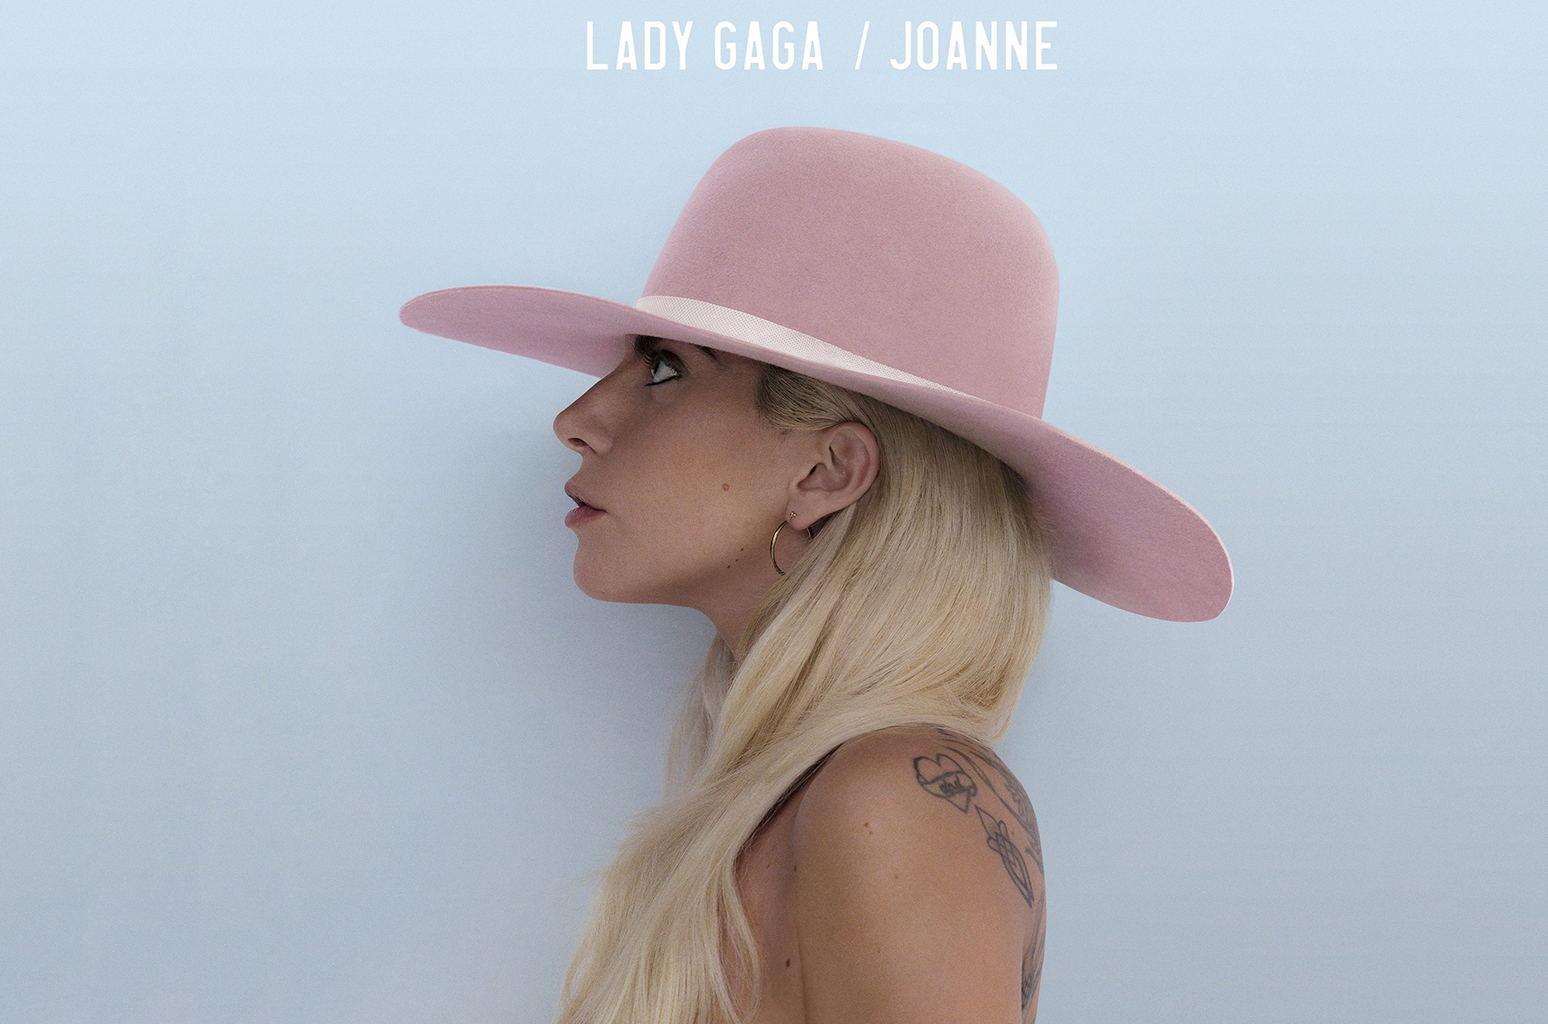 Lady Gaga Tributes Trayvon Martin On New Album 'Joanne'